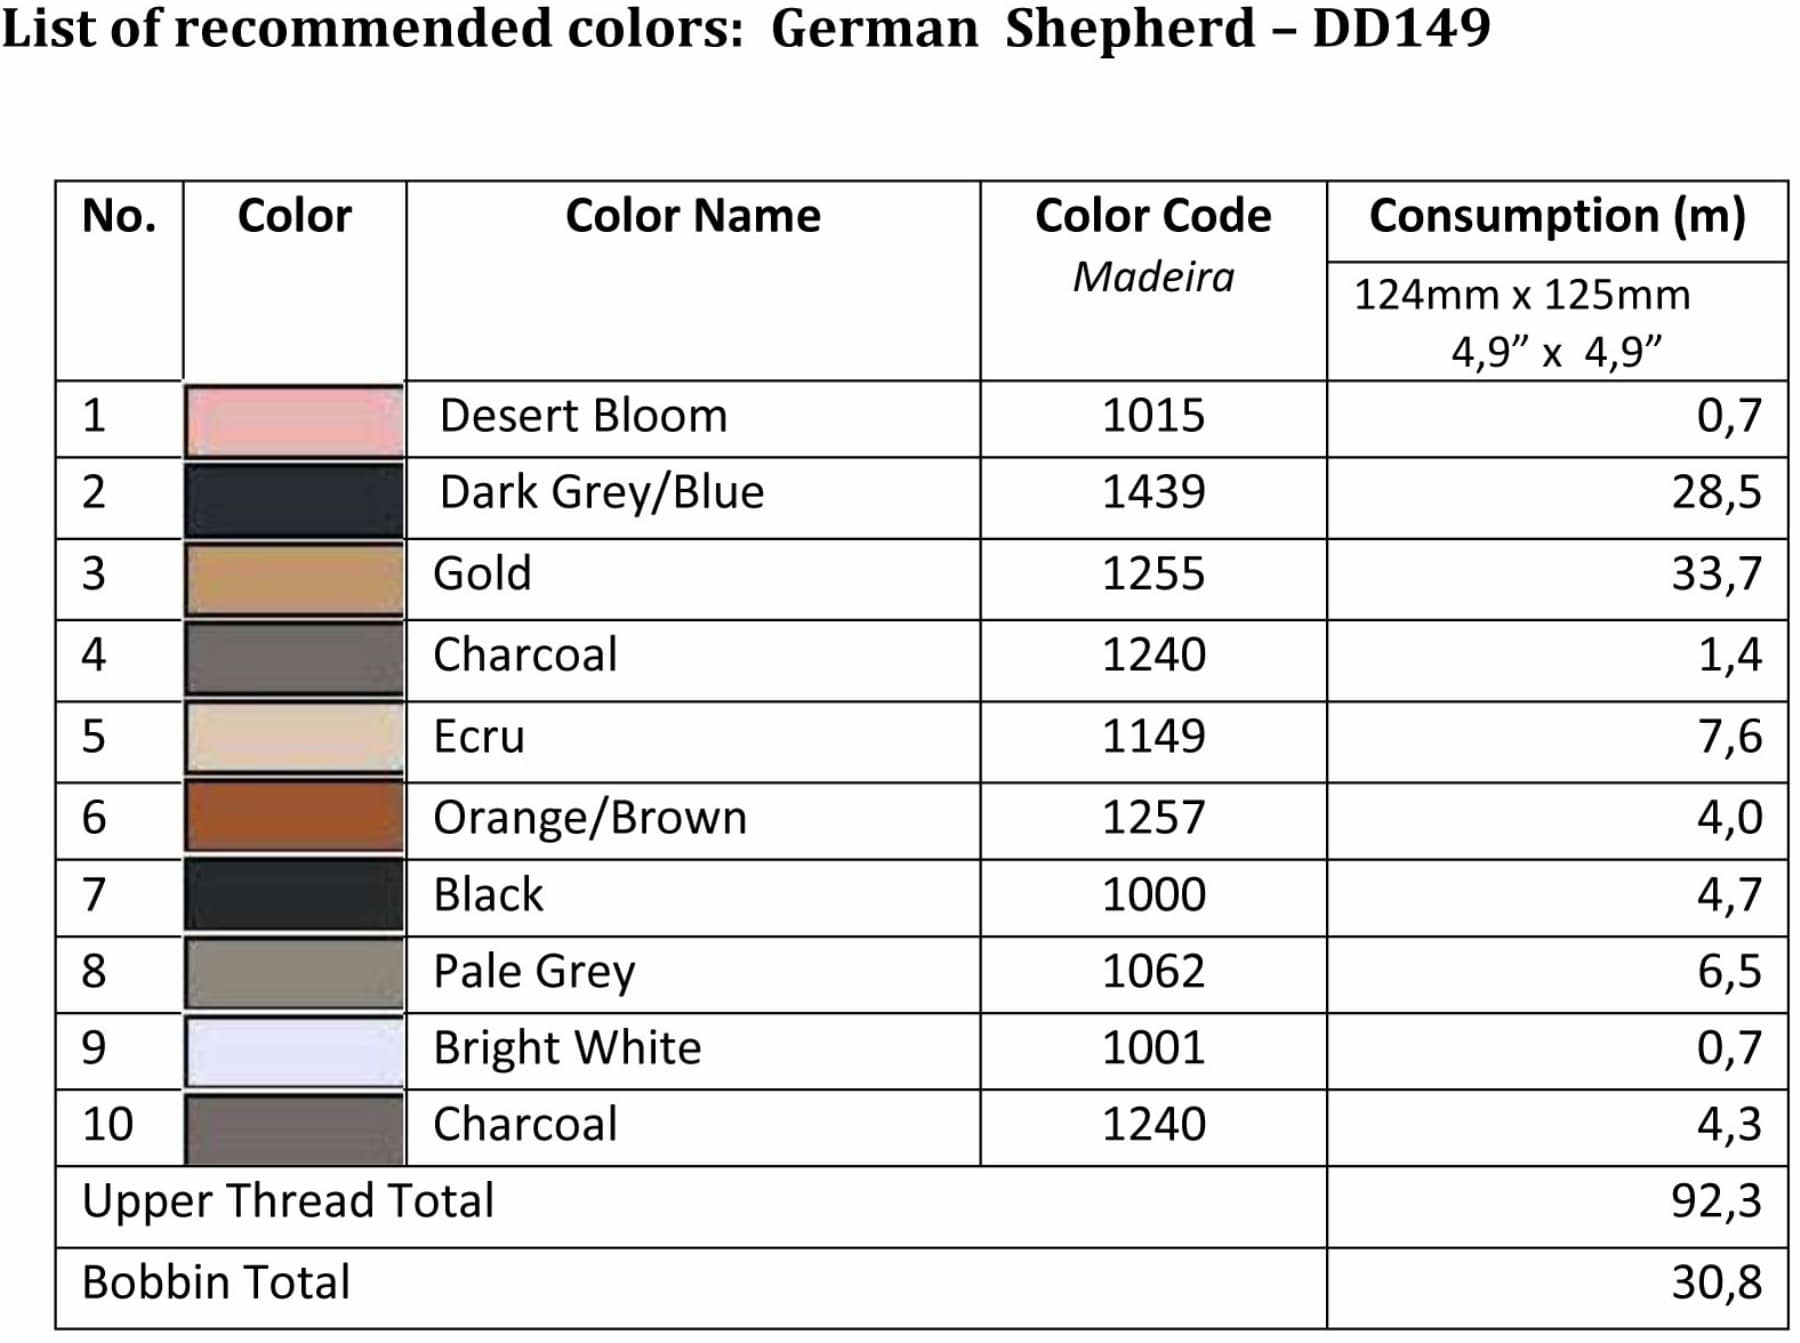 List of recommended colors - German Shepherd - Large DD149